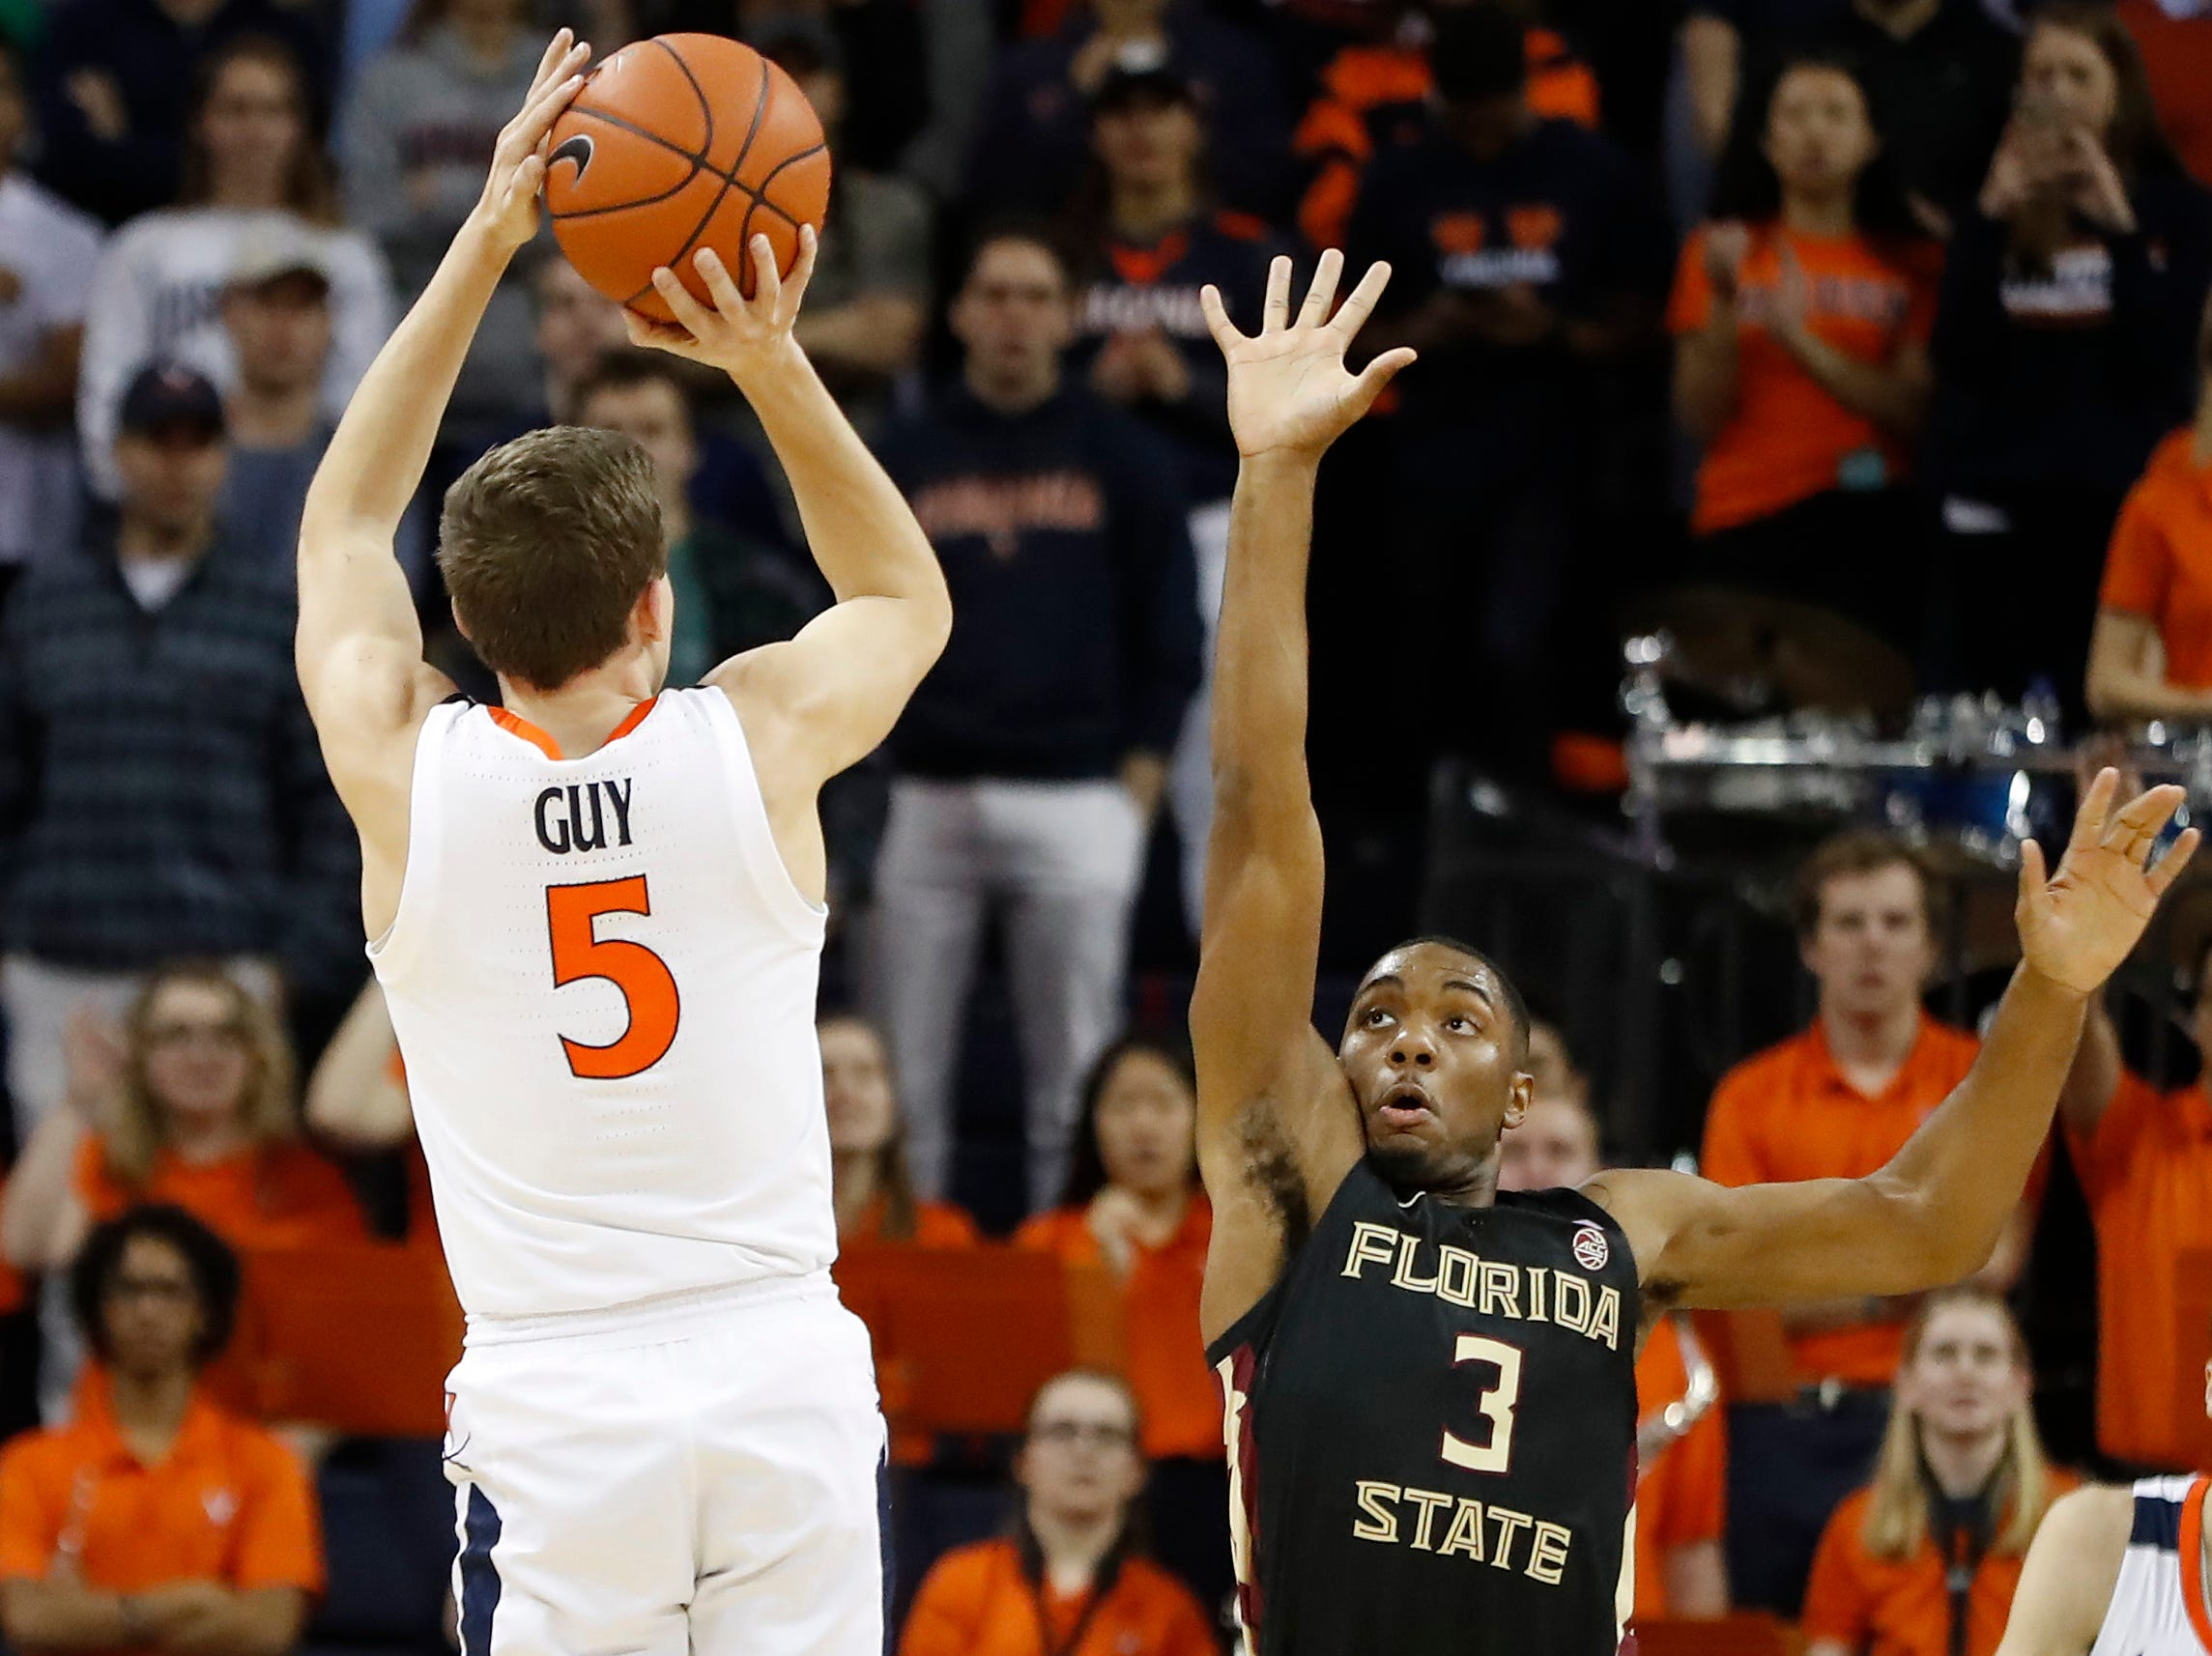 Jan 5, 2019; Charlottesville, VA, USA; Virginia Cavaliers guard Kyle Guy (5) makes a three-point field goal over Florida State Seminoles guard Trent Forrest (3) in the first half at John Paul Jones Arena. Mandatory Credit: Geoff Burke-USA TODAY Sports